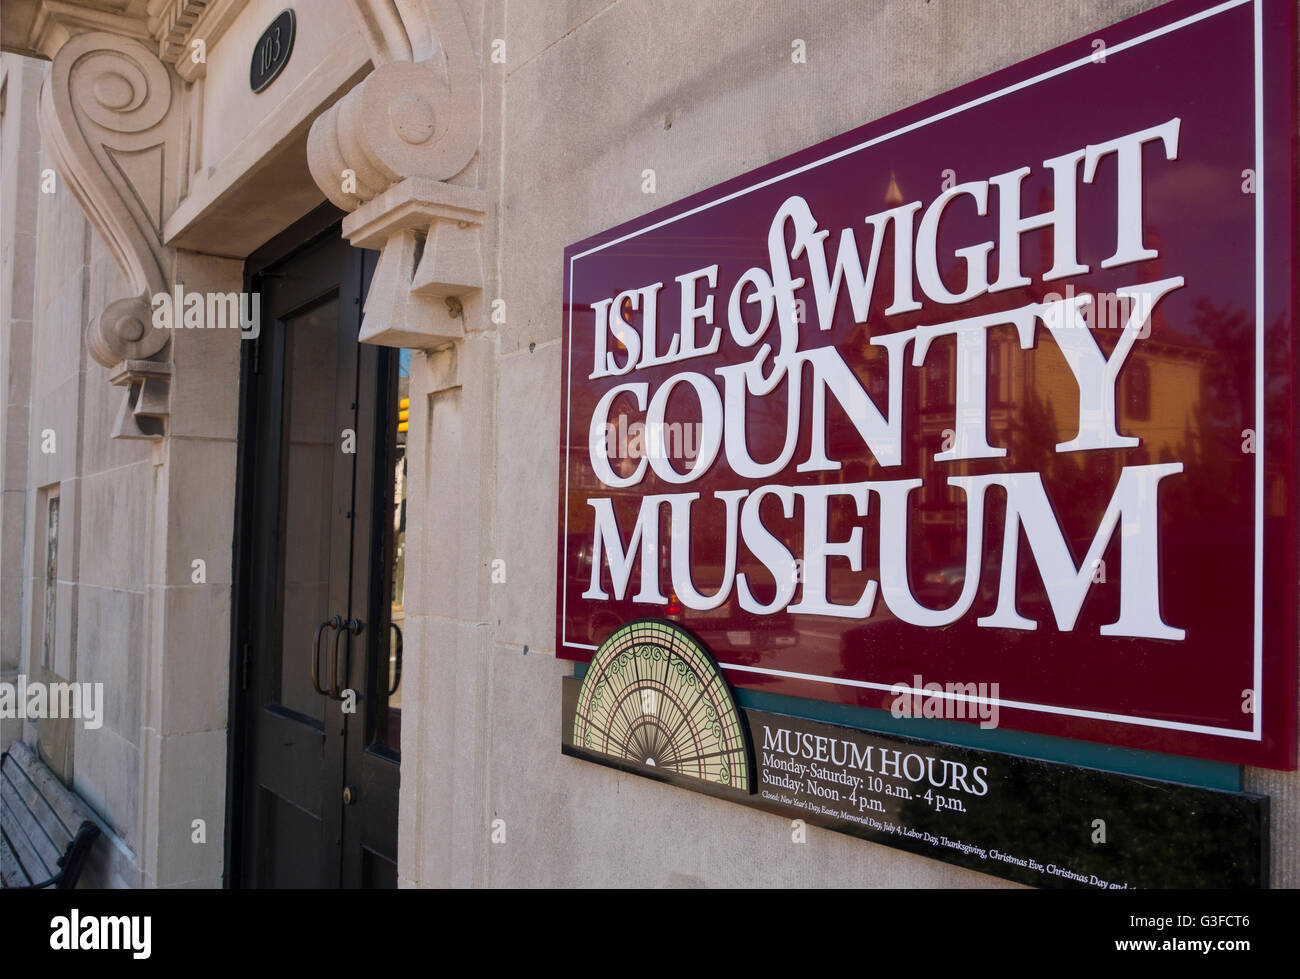 Isle of Wight county museum in Smithfield Virginia - Stock Image